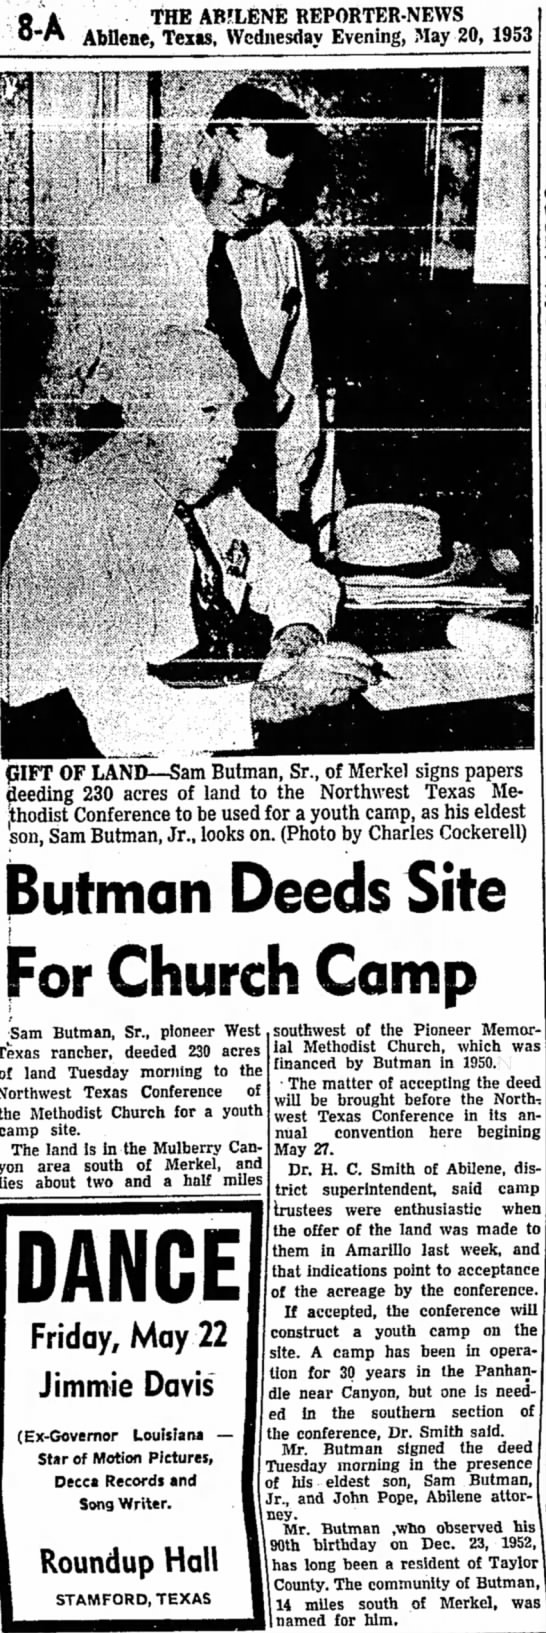 Sam Butman signing land over to Butman camp